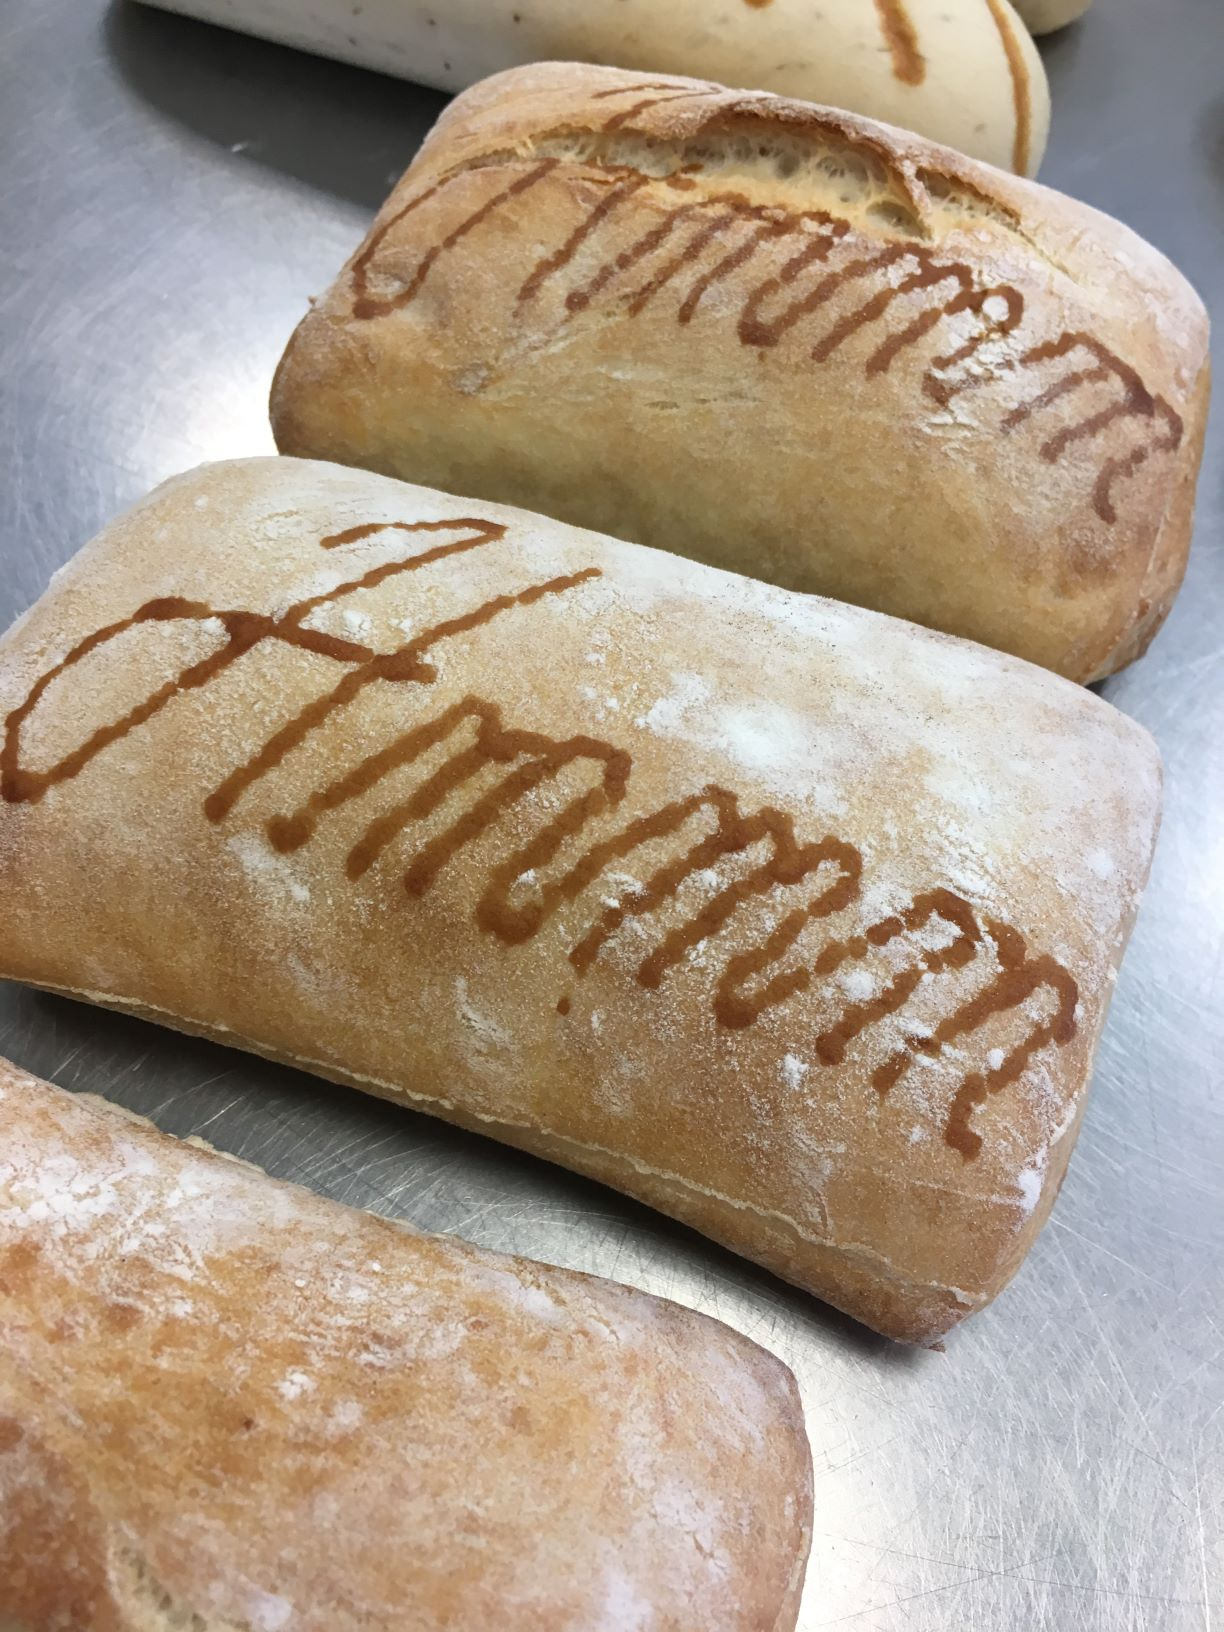 Ciabatta bread with RudinJet edible paste bread decorations made by FoodJet food depositor